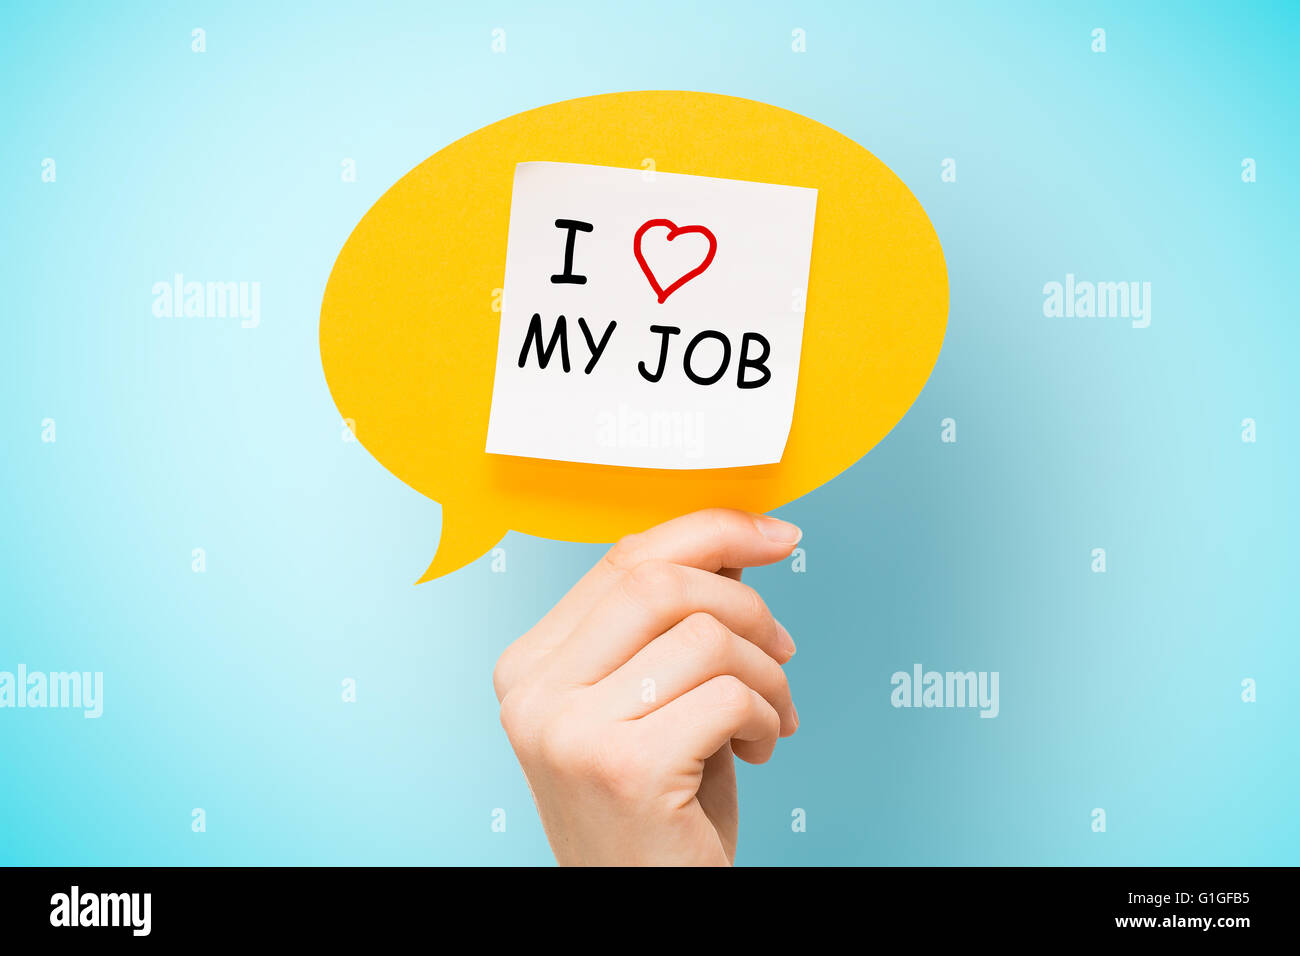 "Adhesive note on yellow speech bubble with ""I love my job"" words on blue background. Stock Photo"